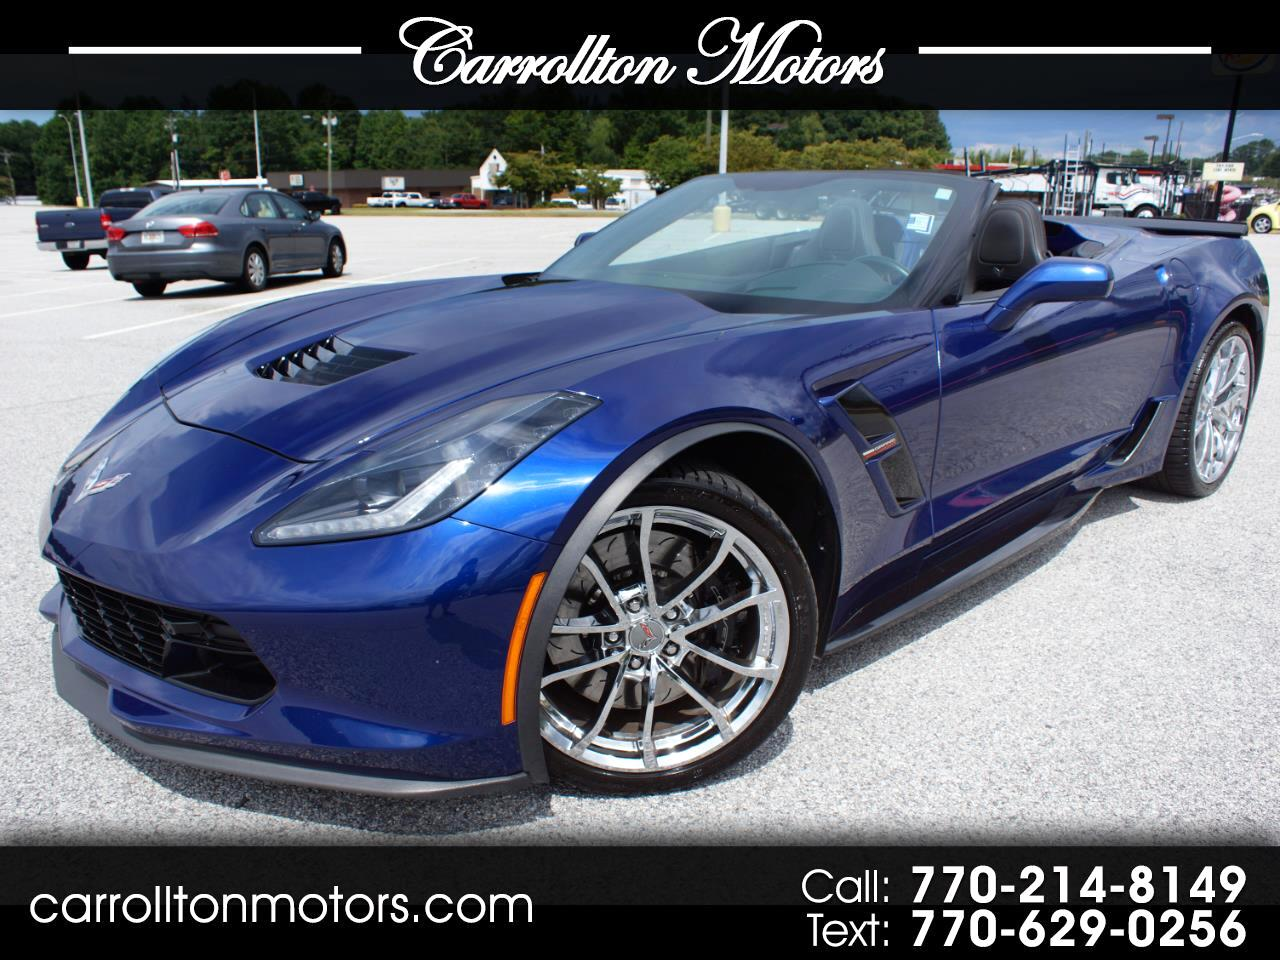 2017 Chevrolet Corvette Grand Sport w/2LT Convertbile